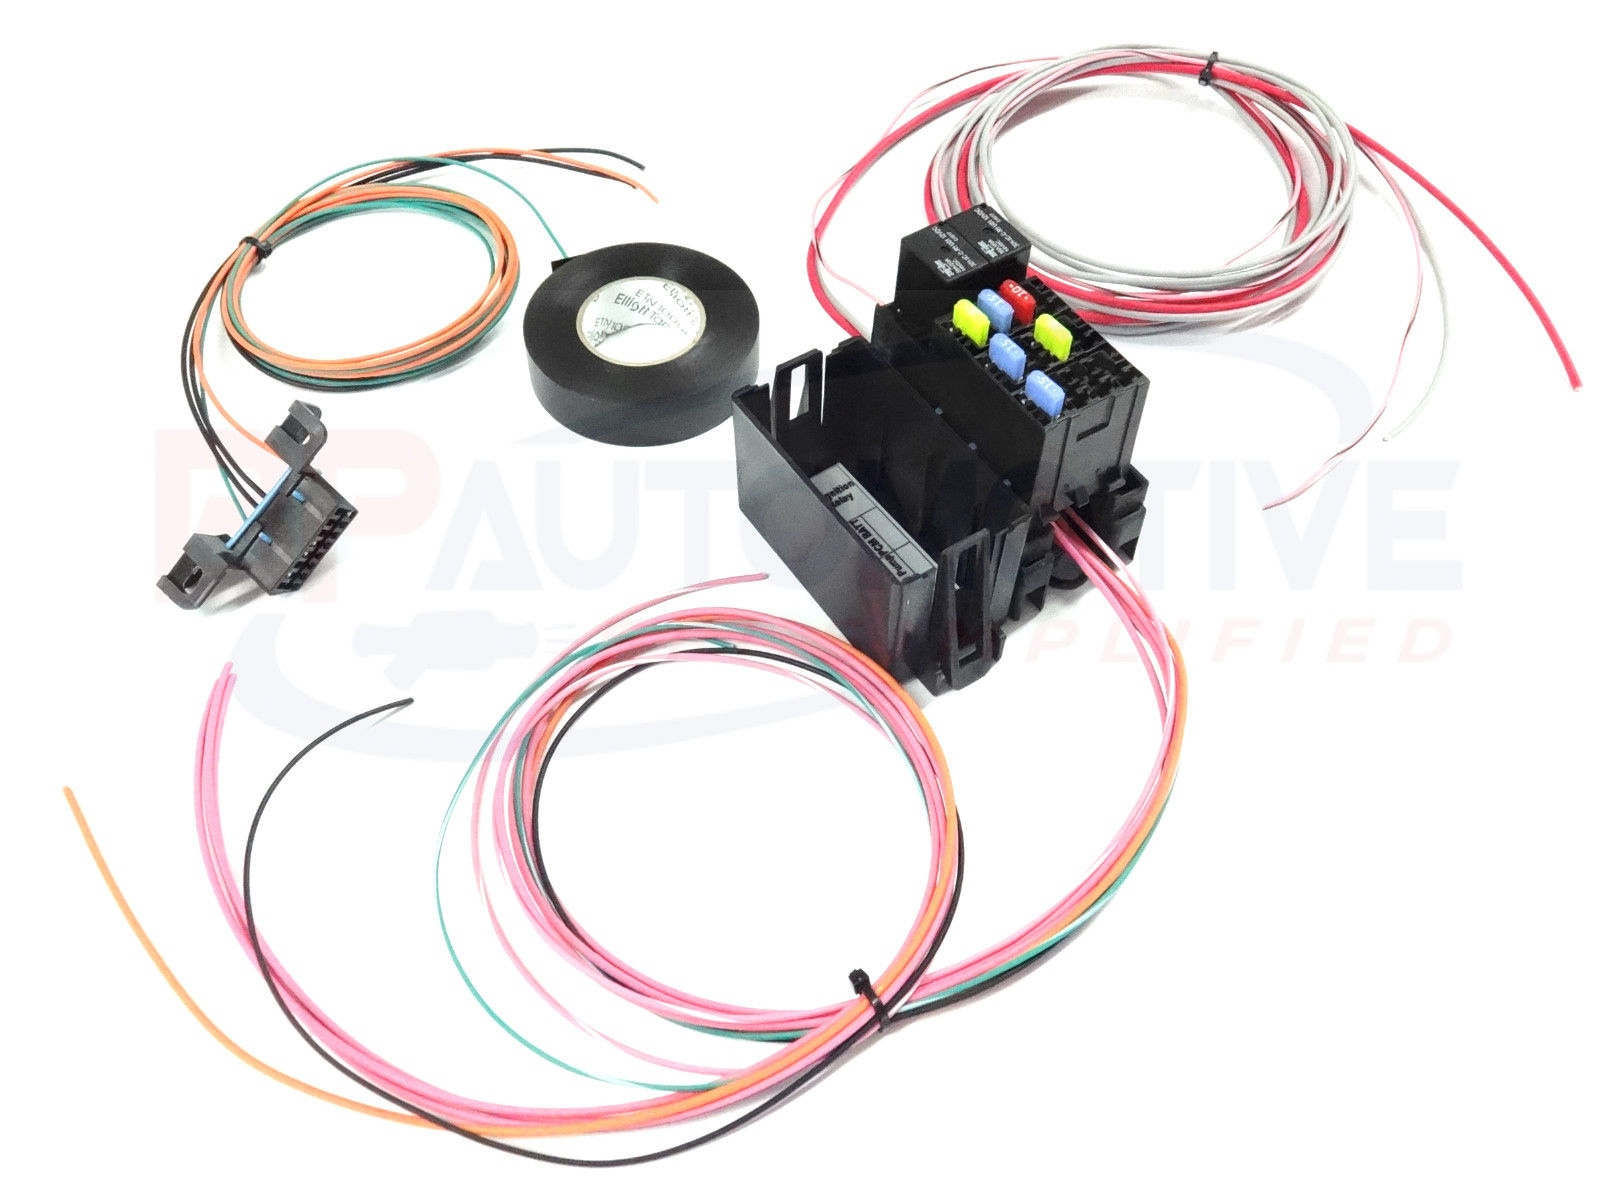 hight resolution of ls1 diy wiring harness kit wiring diagram database ls swap diy harness rework fuse block kit